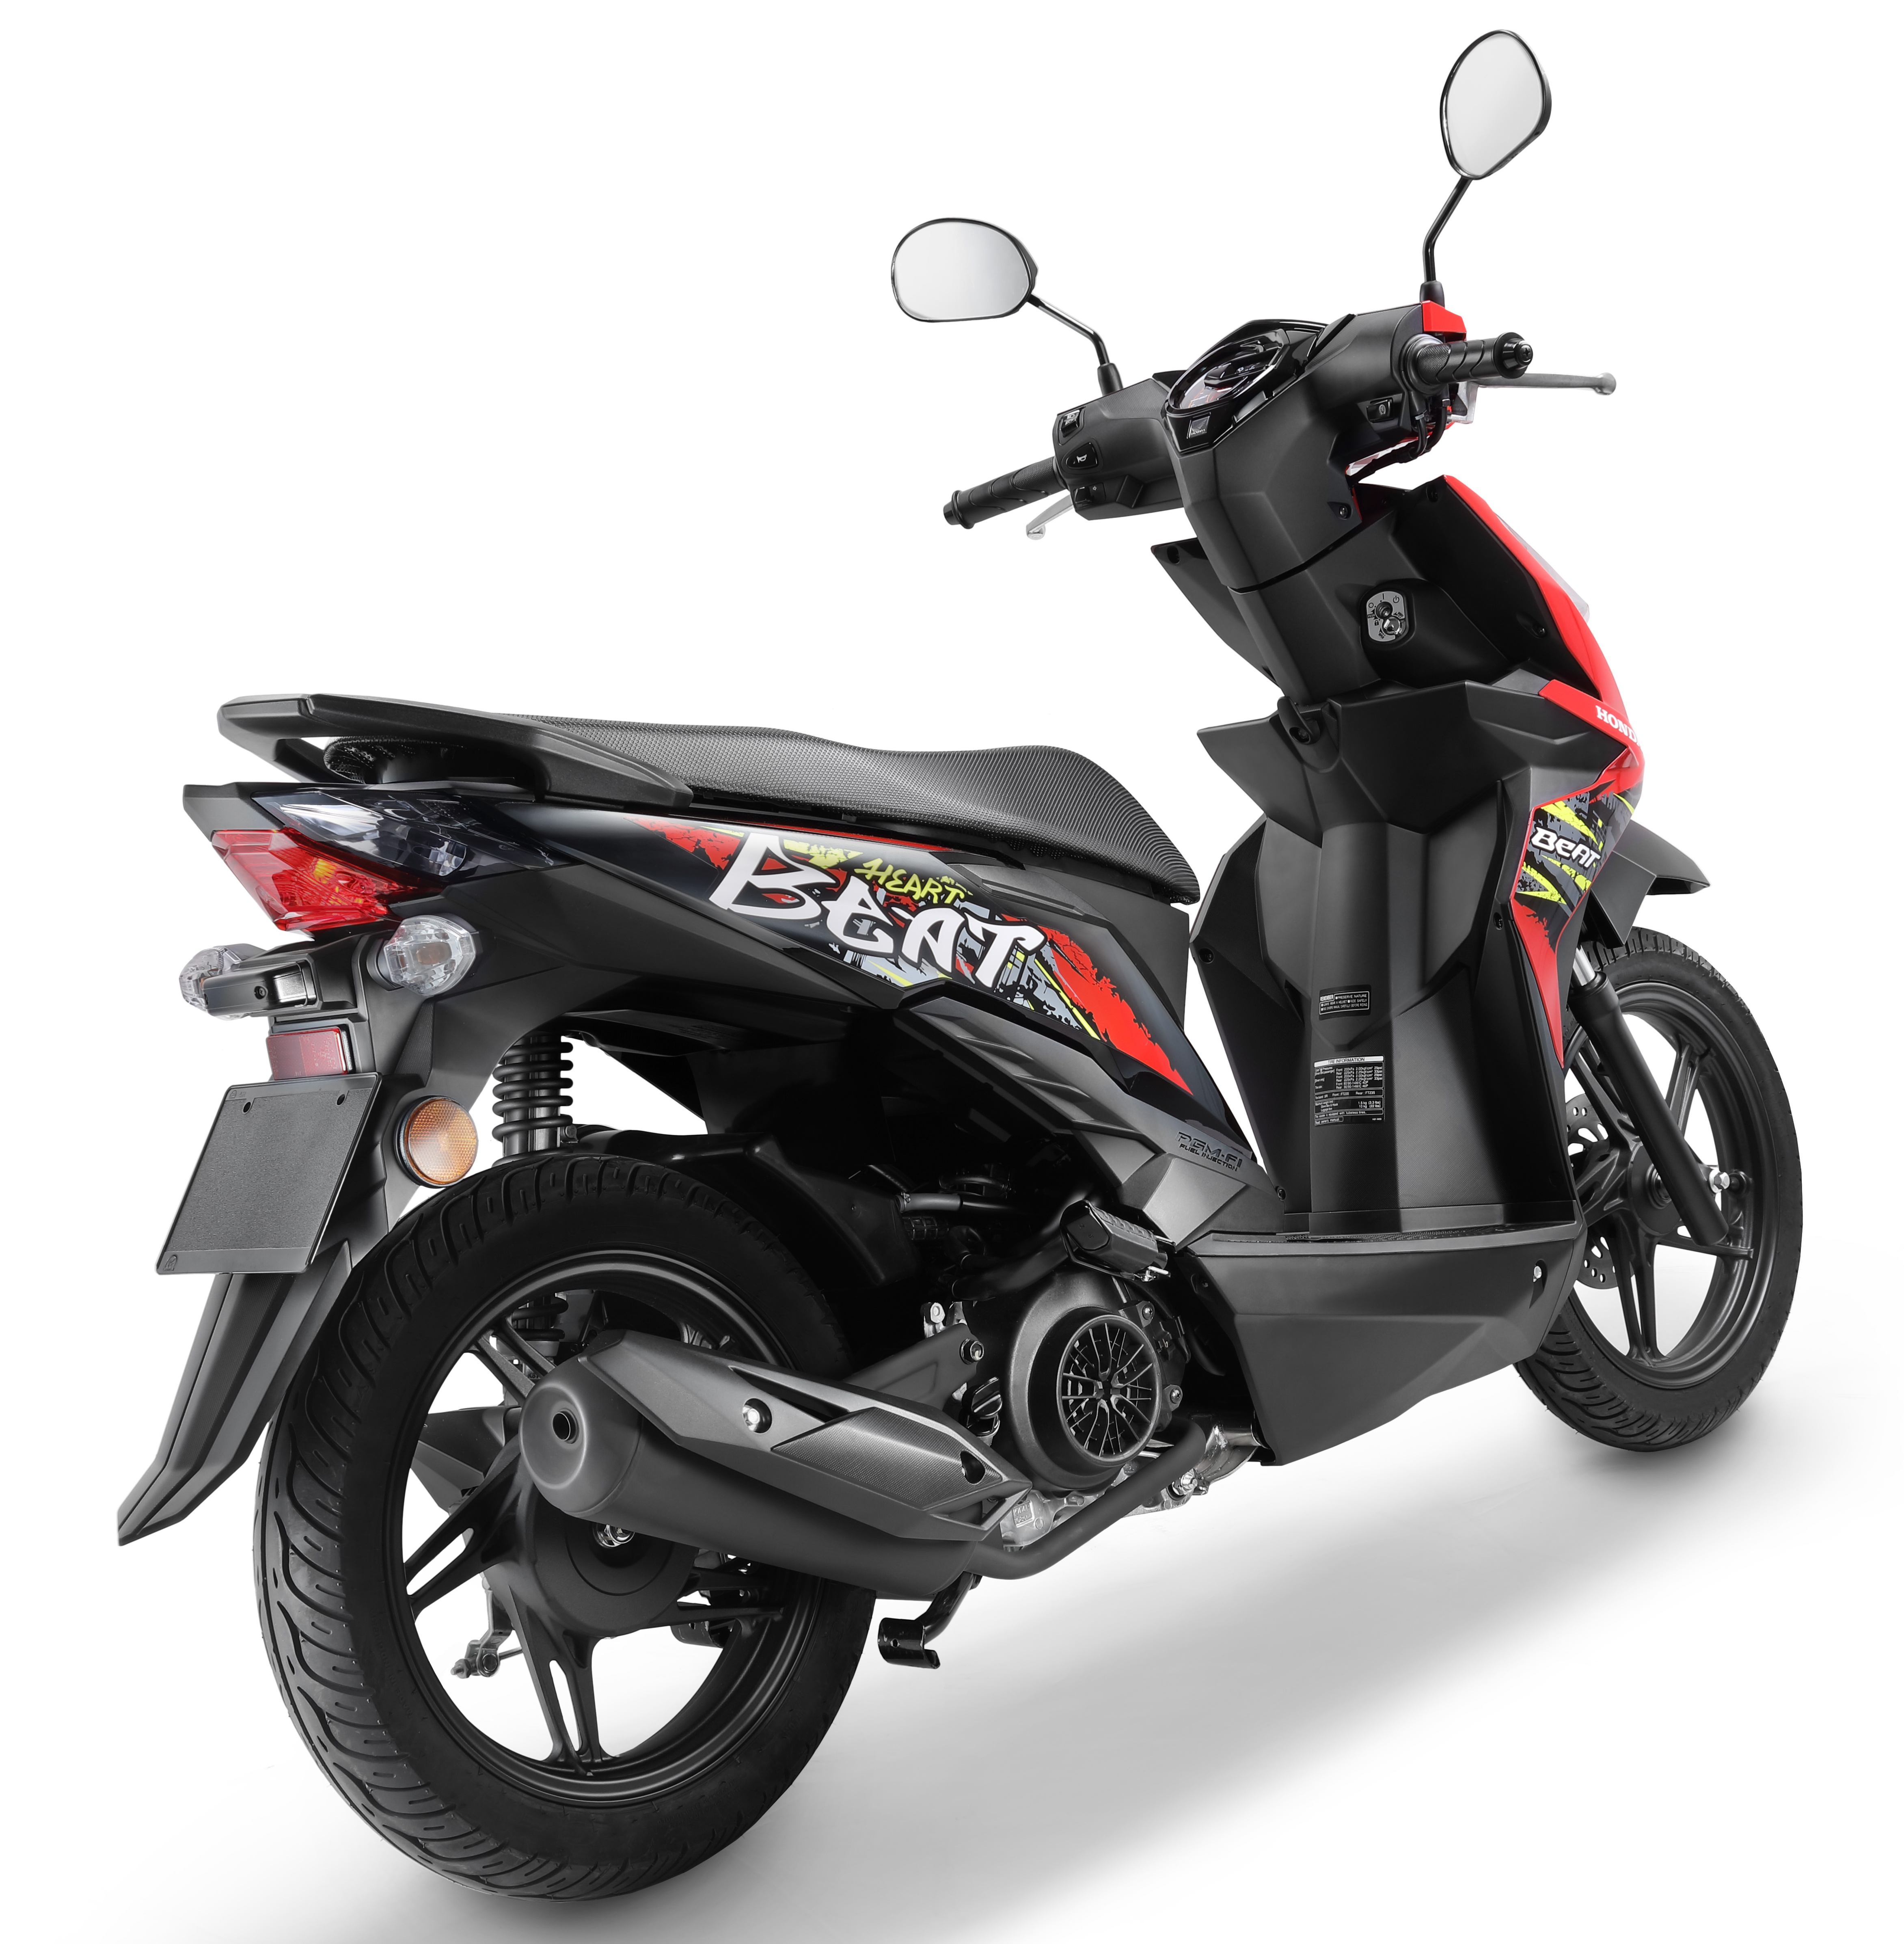 2018 Honda Beat Scooter Now On Sale Rm5 724 Paul Tan Image 739948